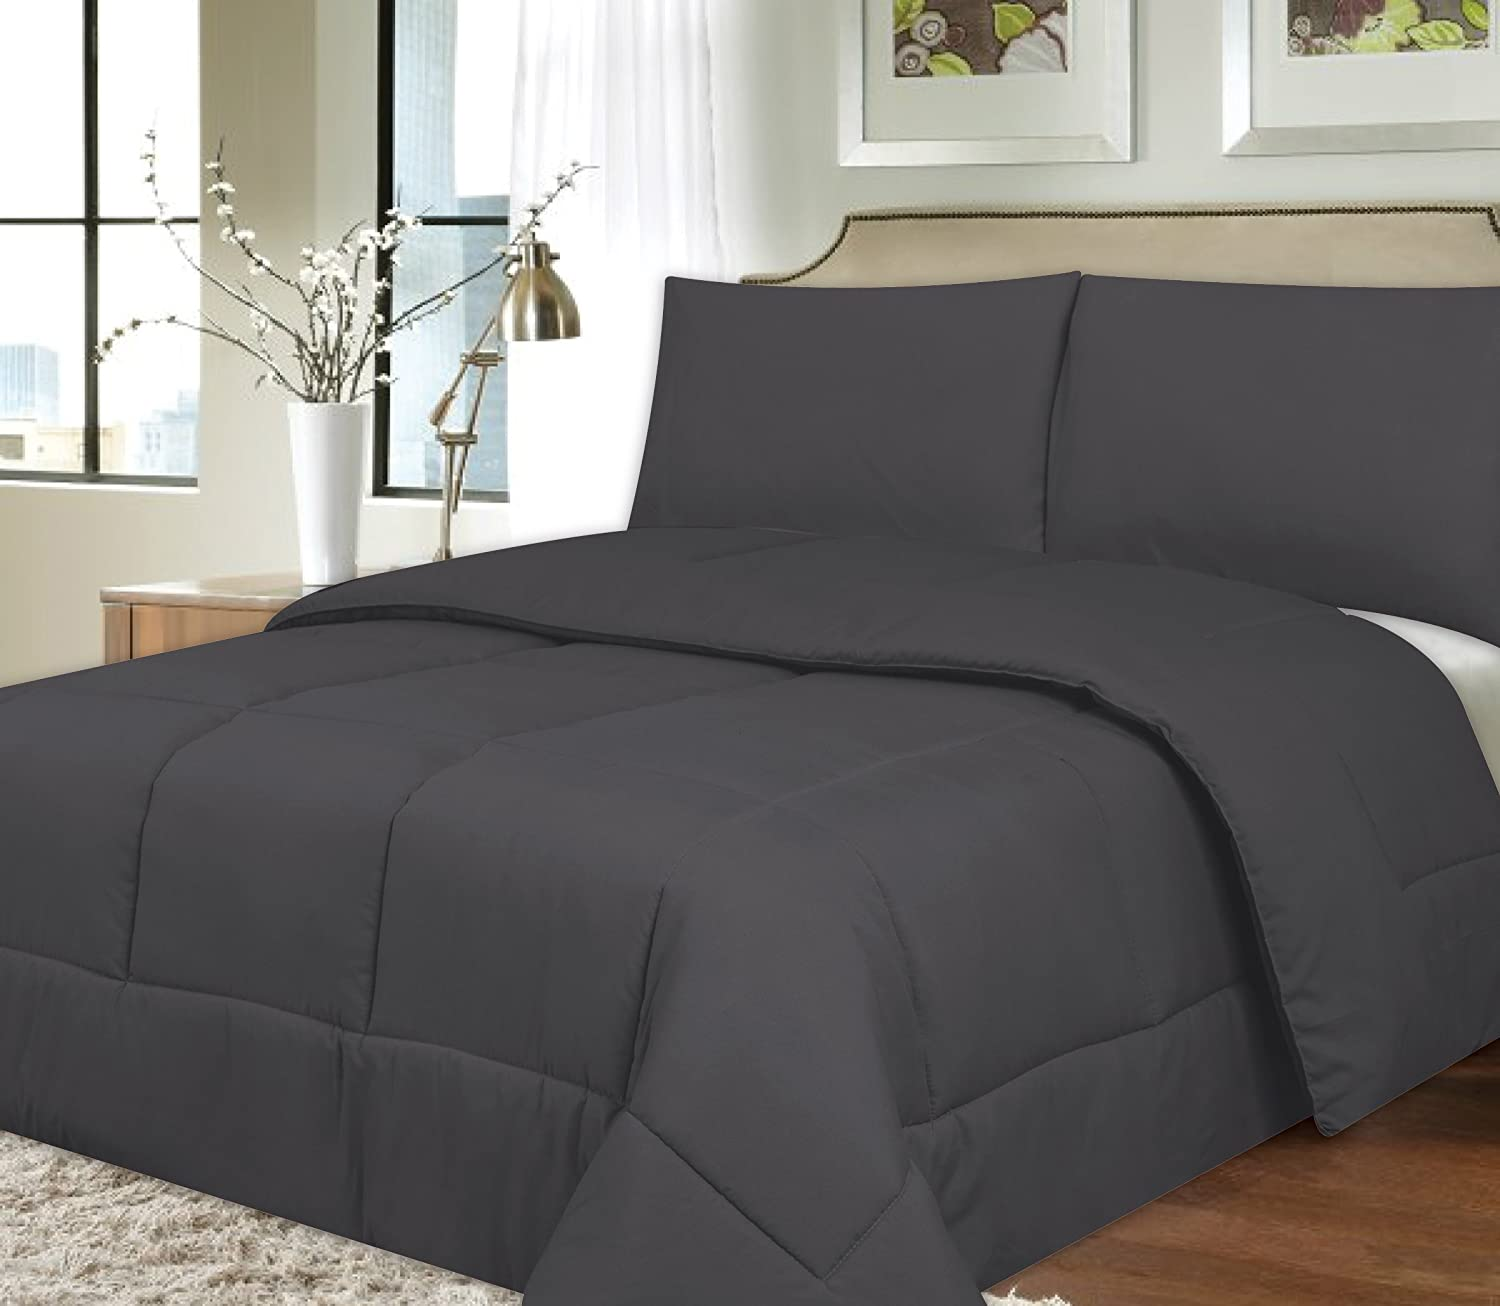 wooden pattern yellow brown wonderful table and reverse by using chevron added carpet duvet bedding king on size dark stained bed bedroom gray placed taupe with grey decor black cover plus side comforter